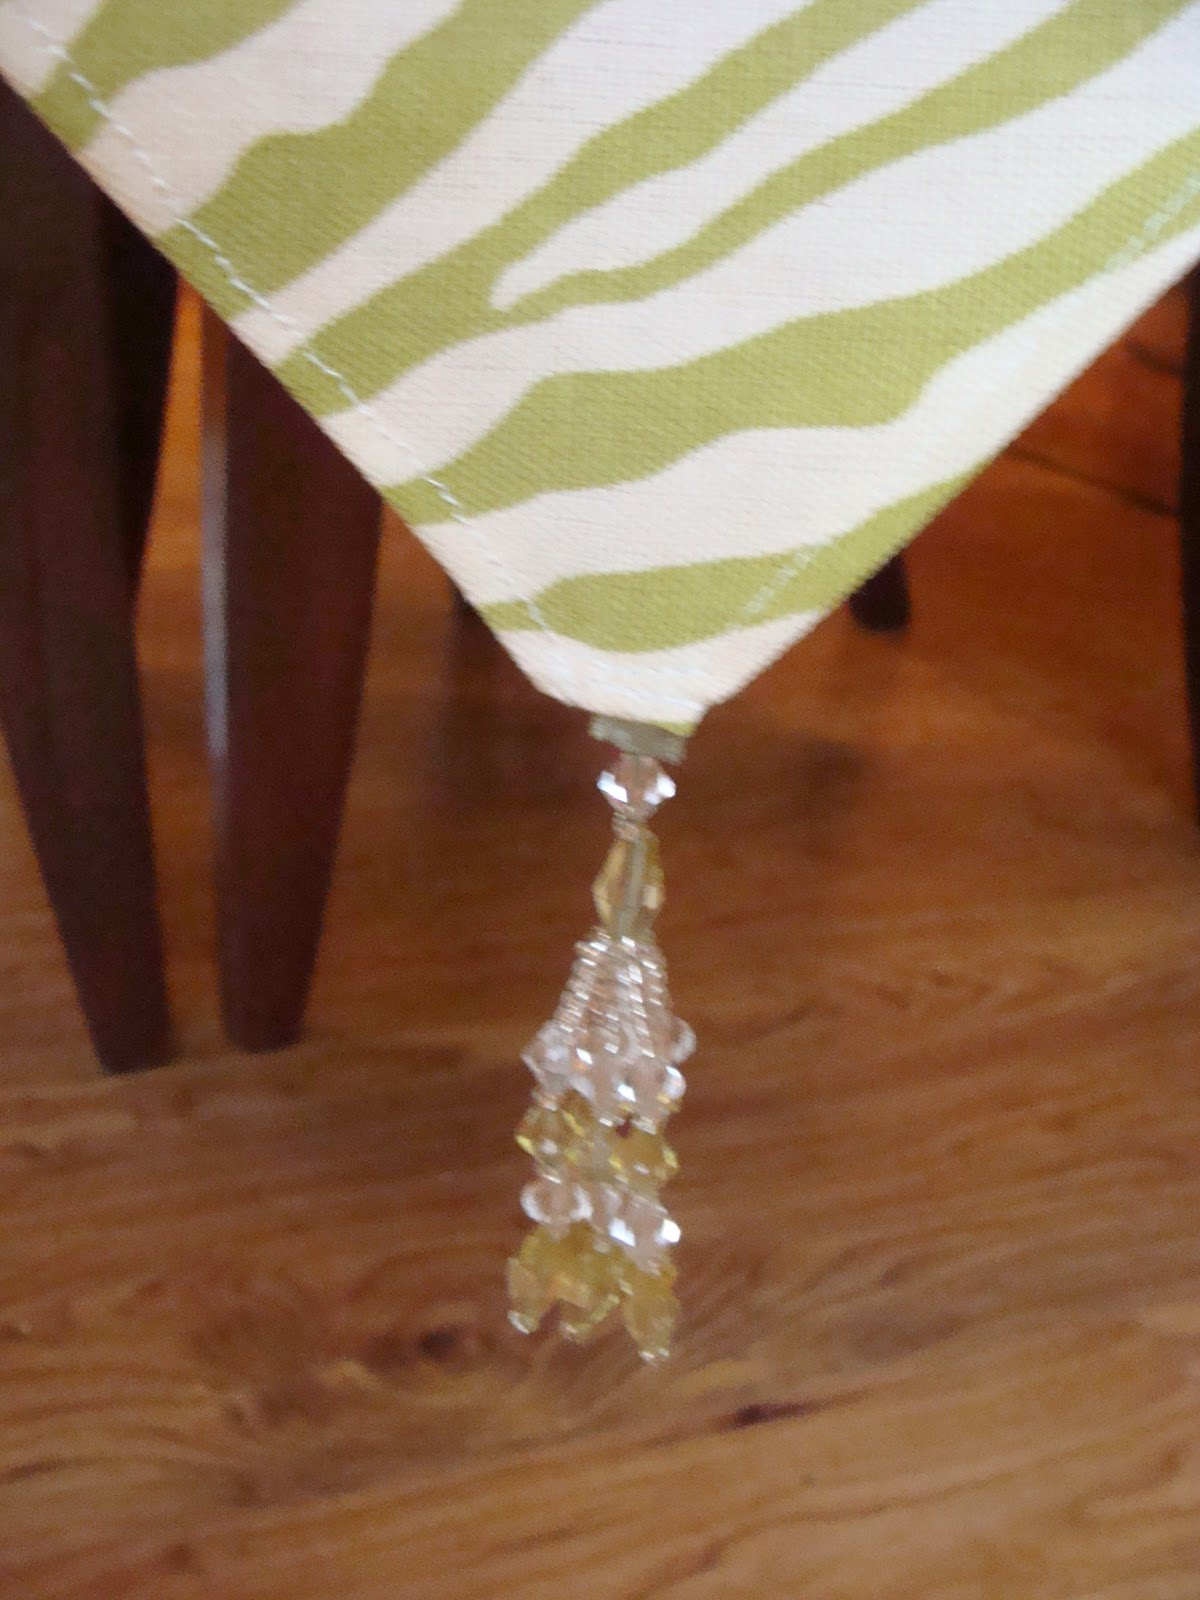 Inside Heather S Home Zebra Print Table Runner And Tray